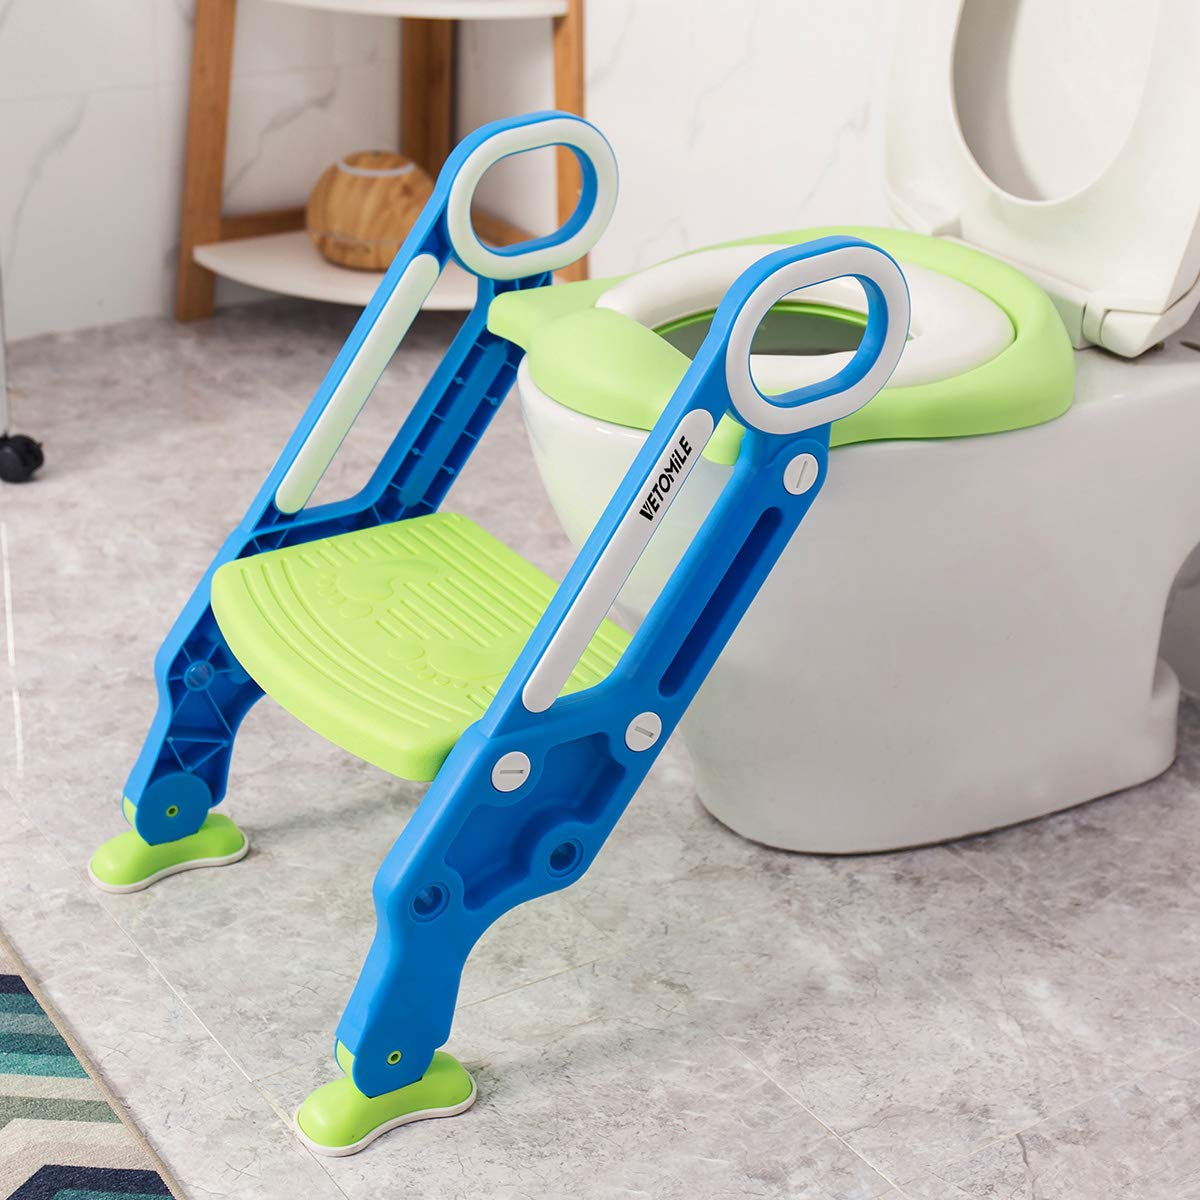 VETOMILE Baby Potty Toilet Trainer Seat for Children Kids Toddles with Adjustable Sturdy Non-Slip Step Stool Ladder and 2 PU Leather Replaceable Soft Padding Suitable for O V U Shaped-Toilets by VETOMILE